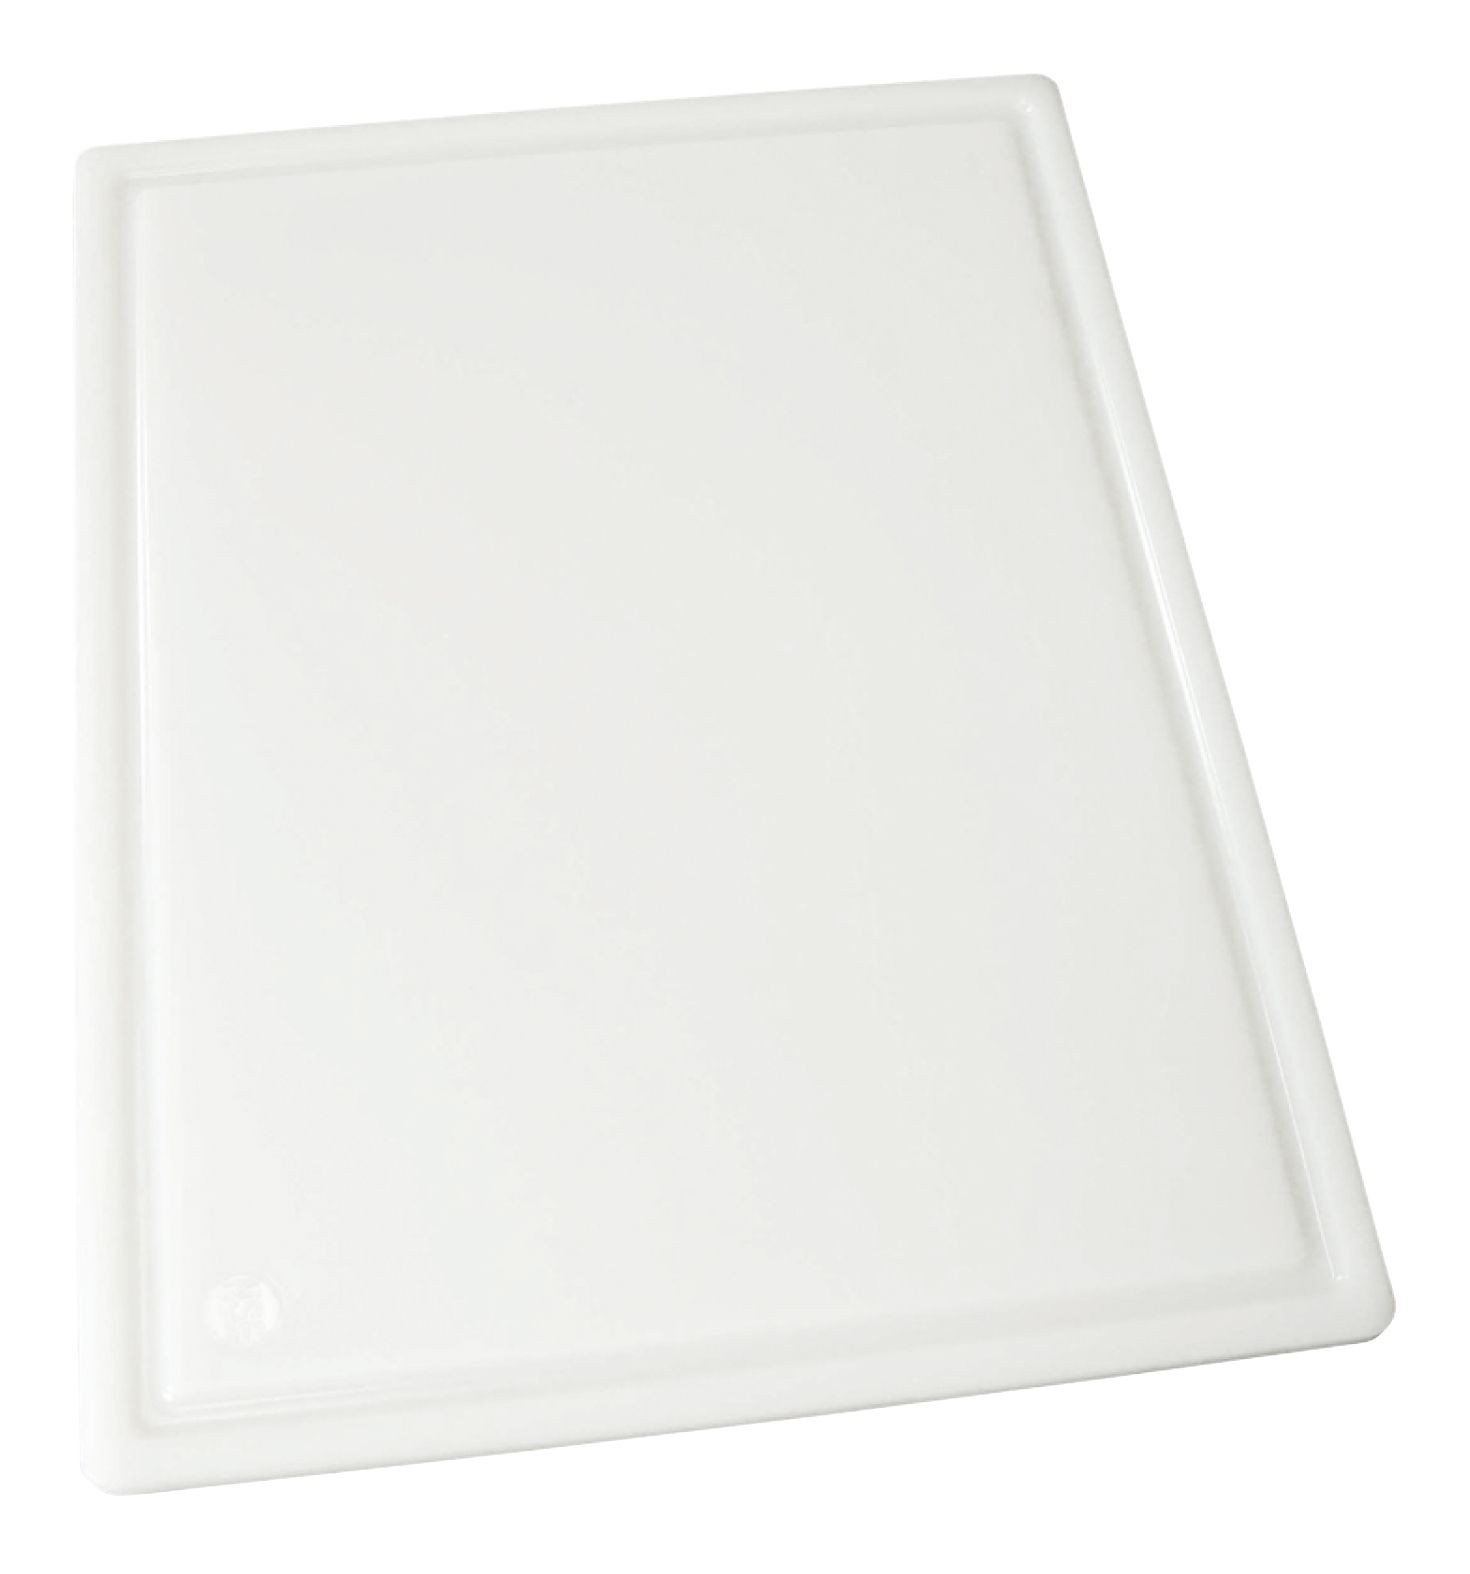 Grooved Cutting Board 12 X 18 X 1/2 White (Bakery & Dairy Board)